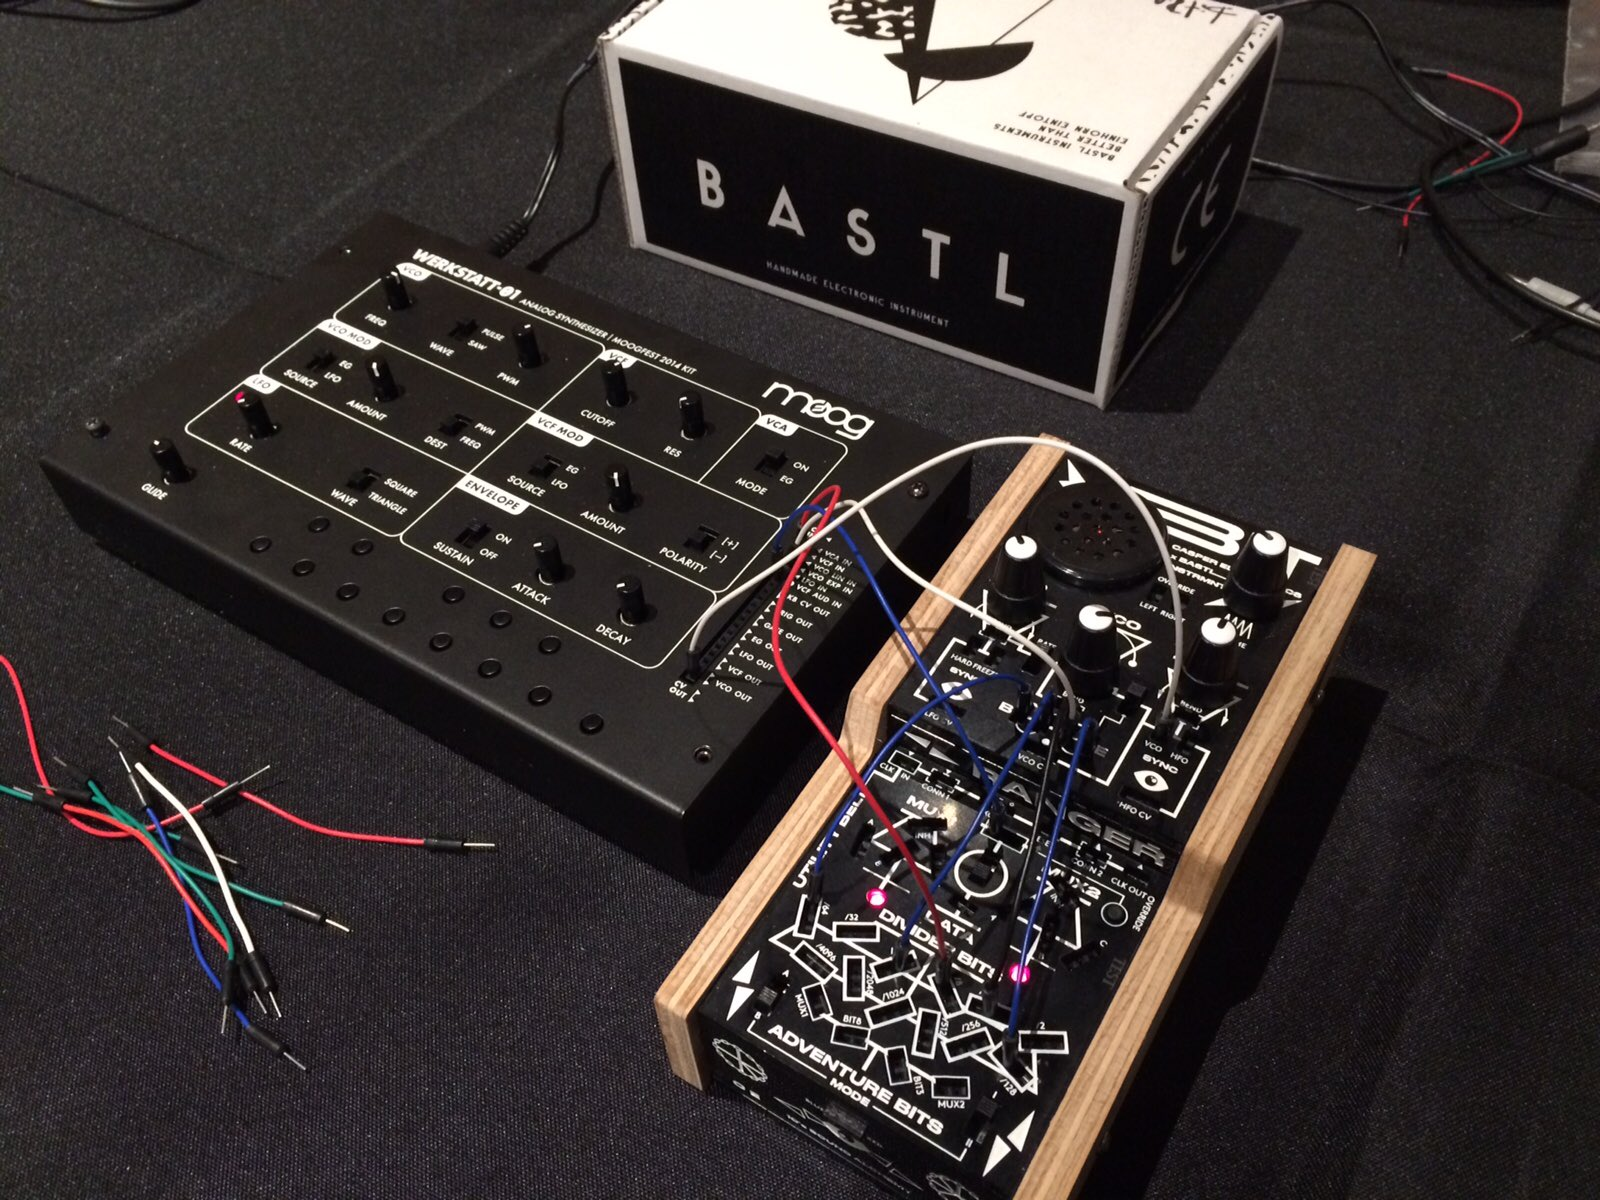 Bit Ranger & Werkstatt. Brothers from another mother. ♥️ to @bastlinstrument for the beautiful & stupid fun designs https://t.co/ti6roVtYWH